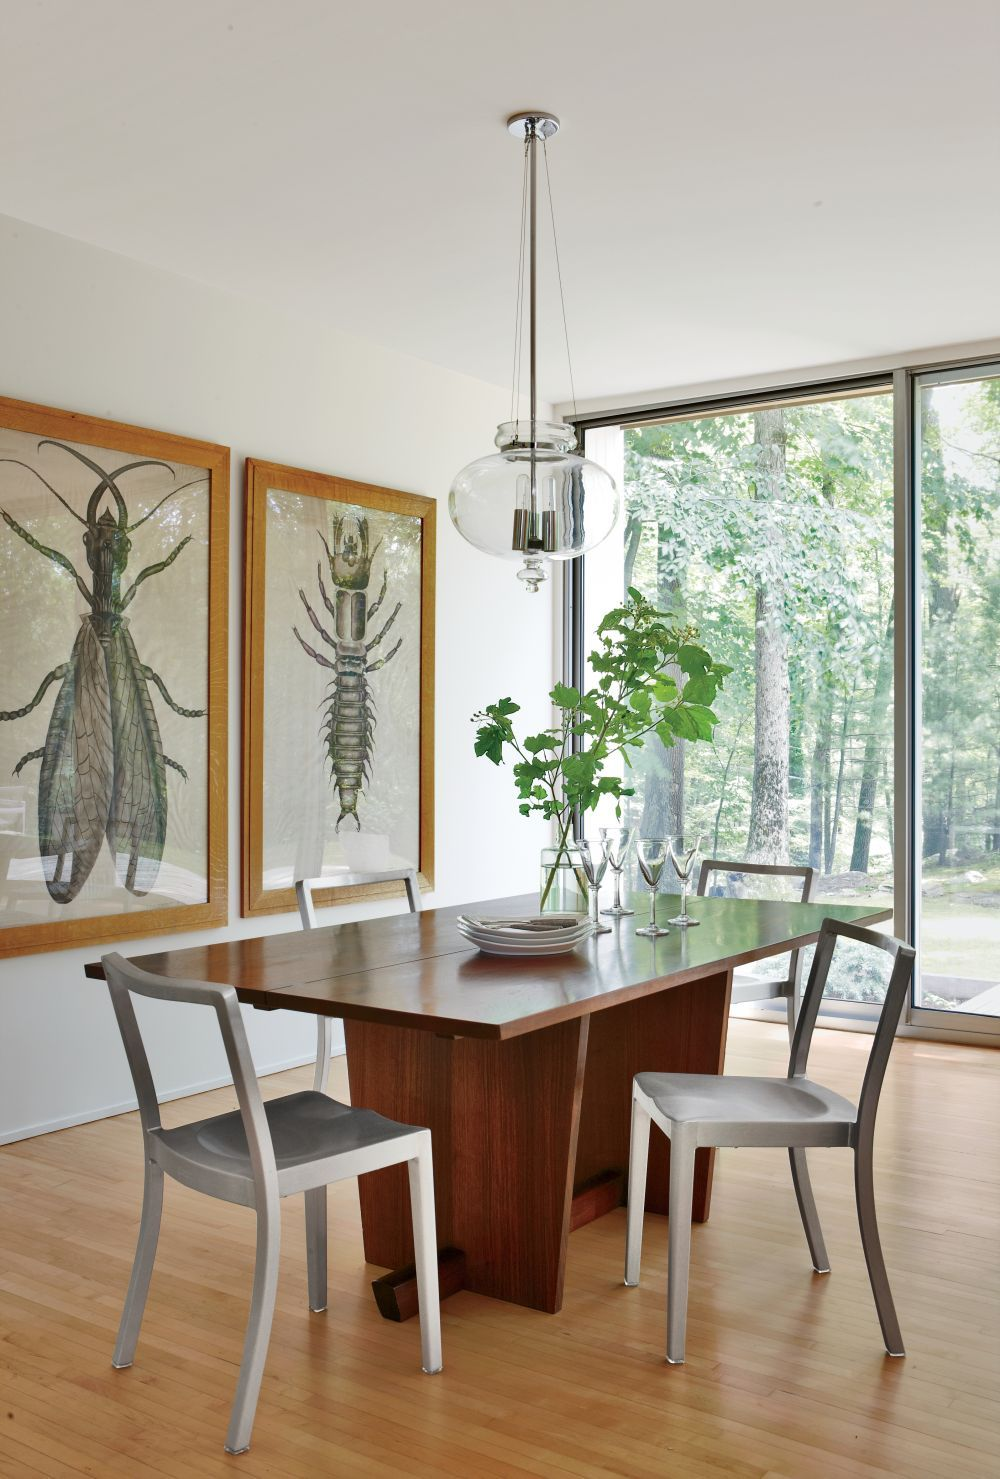 J&s Favorite Contemporary Dining Roommichael Formica Incin Inspiration Dining Room Sets In Ct Decorating Design